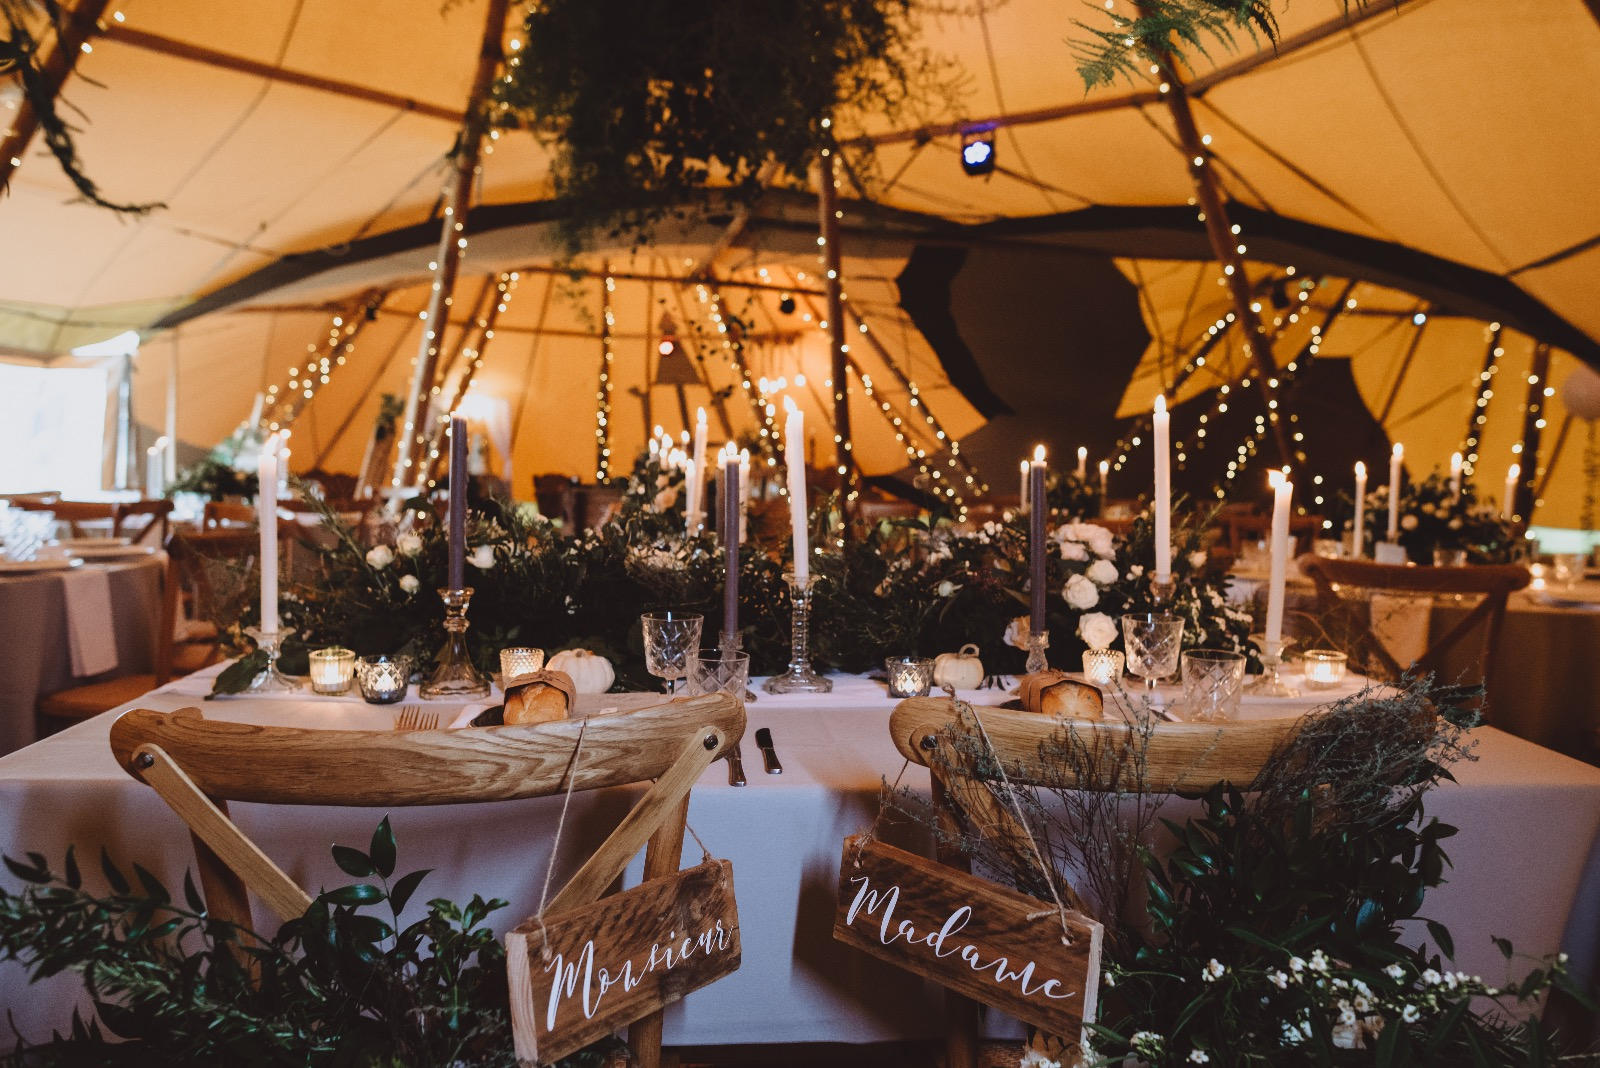 How To Style Your Tipi Wedding Explained by Lesley of The Rustic Wedding Company. Over Sized Greenery both hanging and on chairs